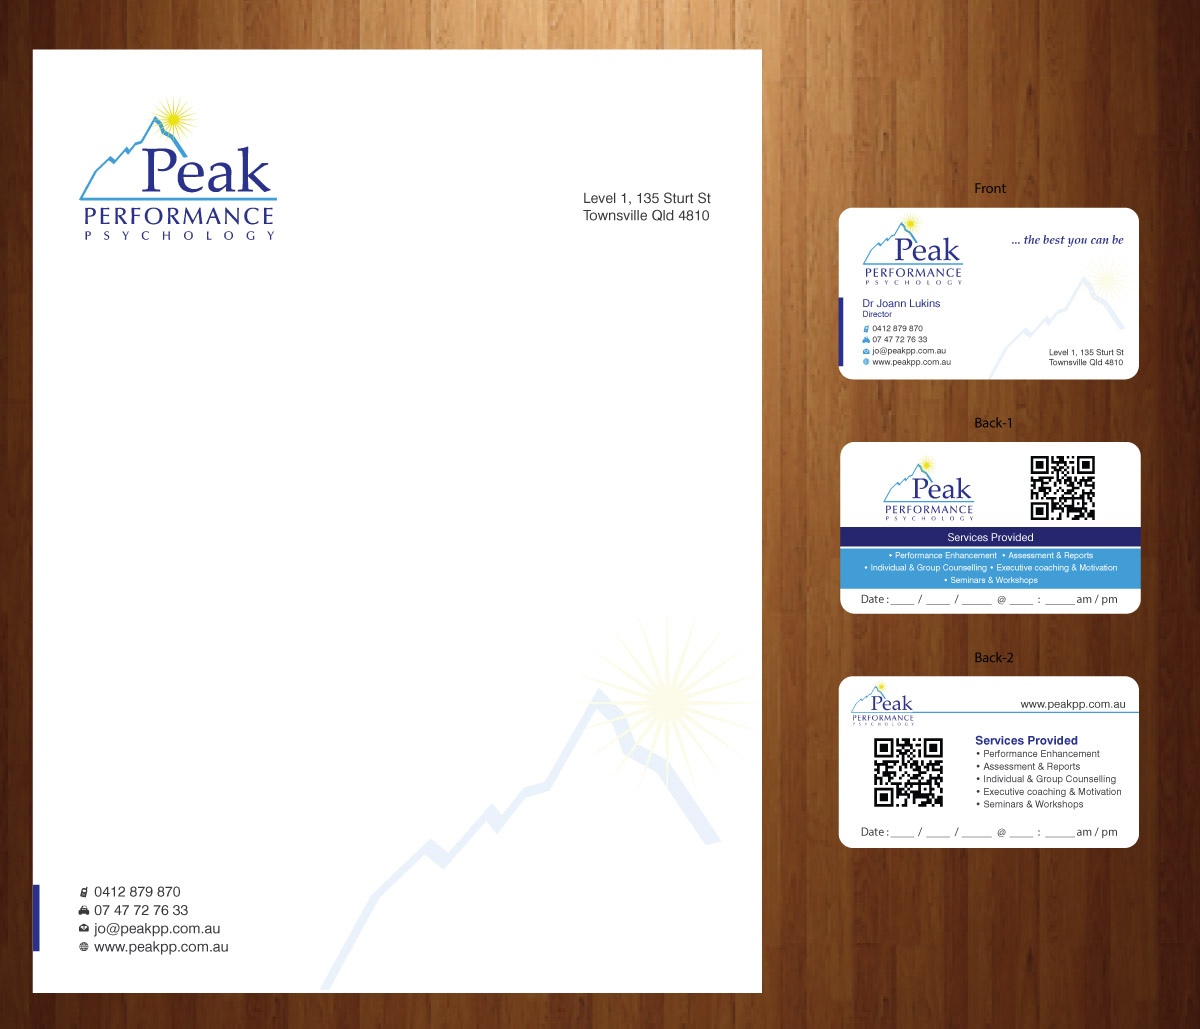 Modern professional business card design for peak performance business card design by smart for performance psychology business card design letterhead design magicingreecefo Choice Image